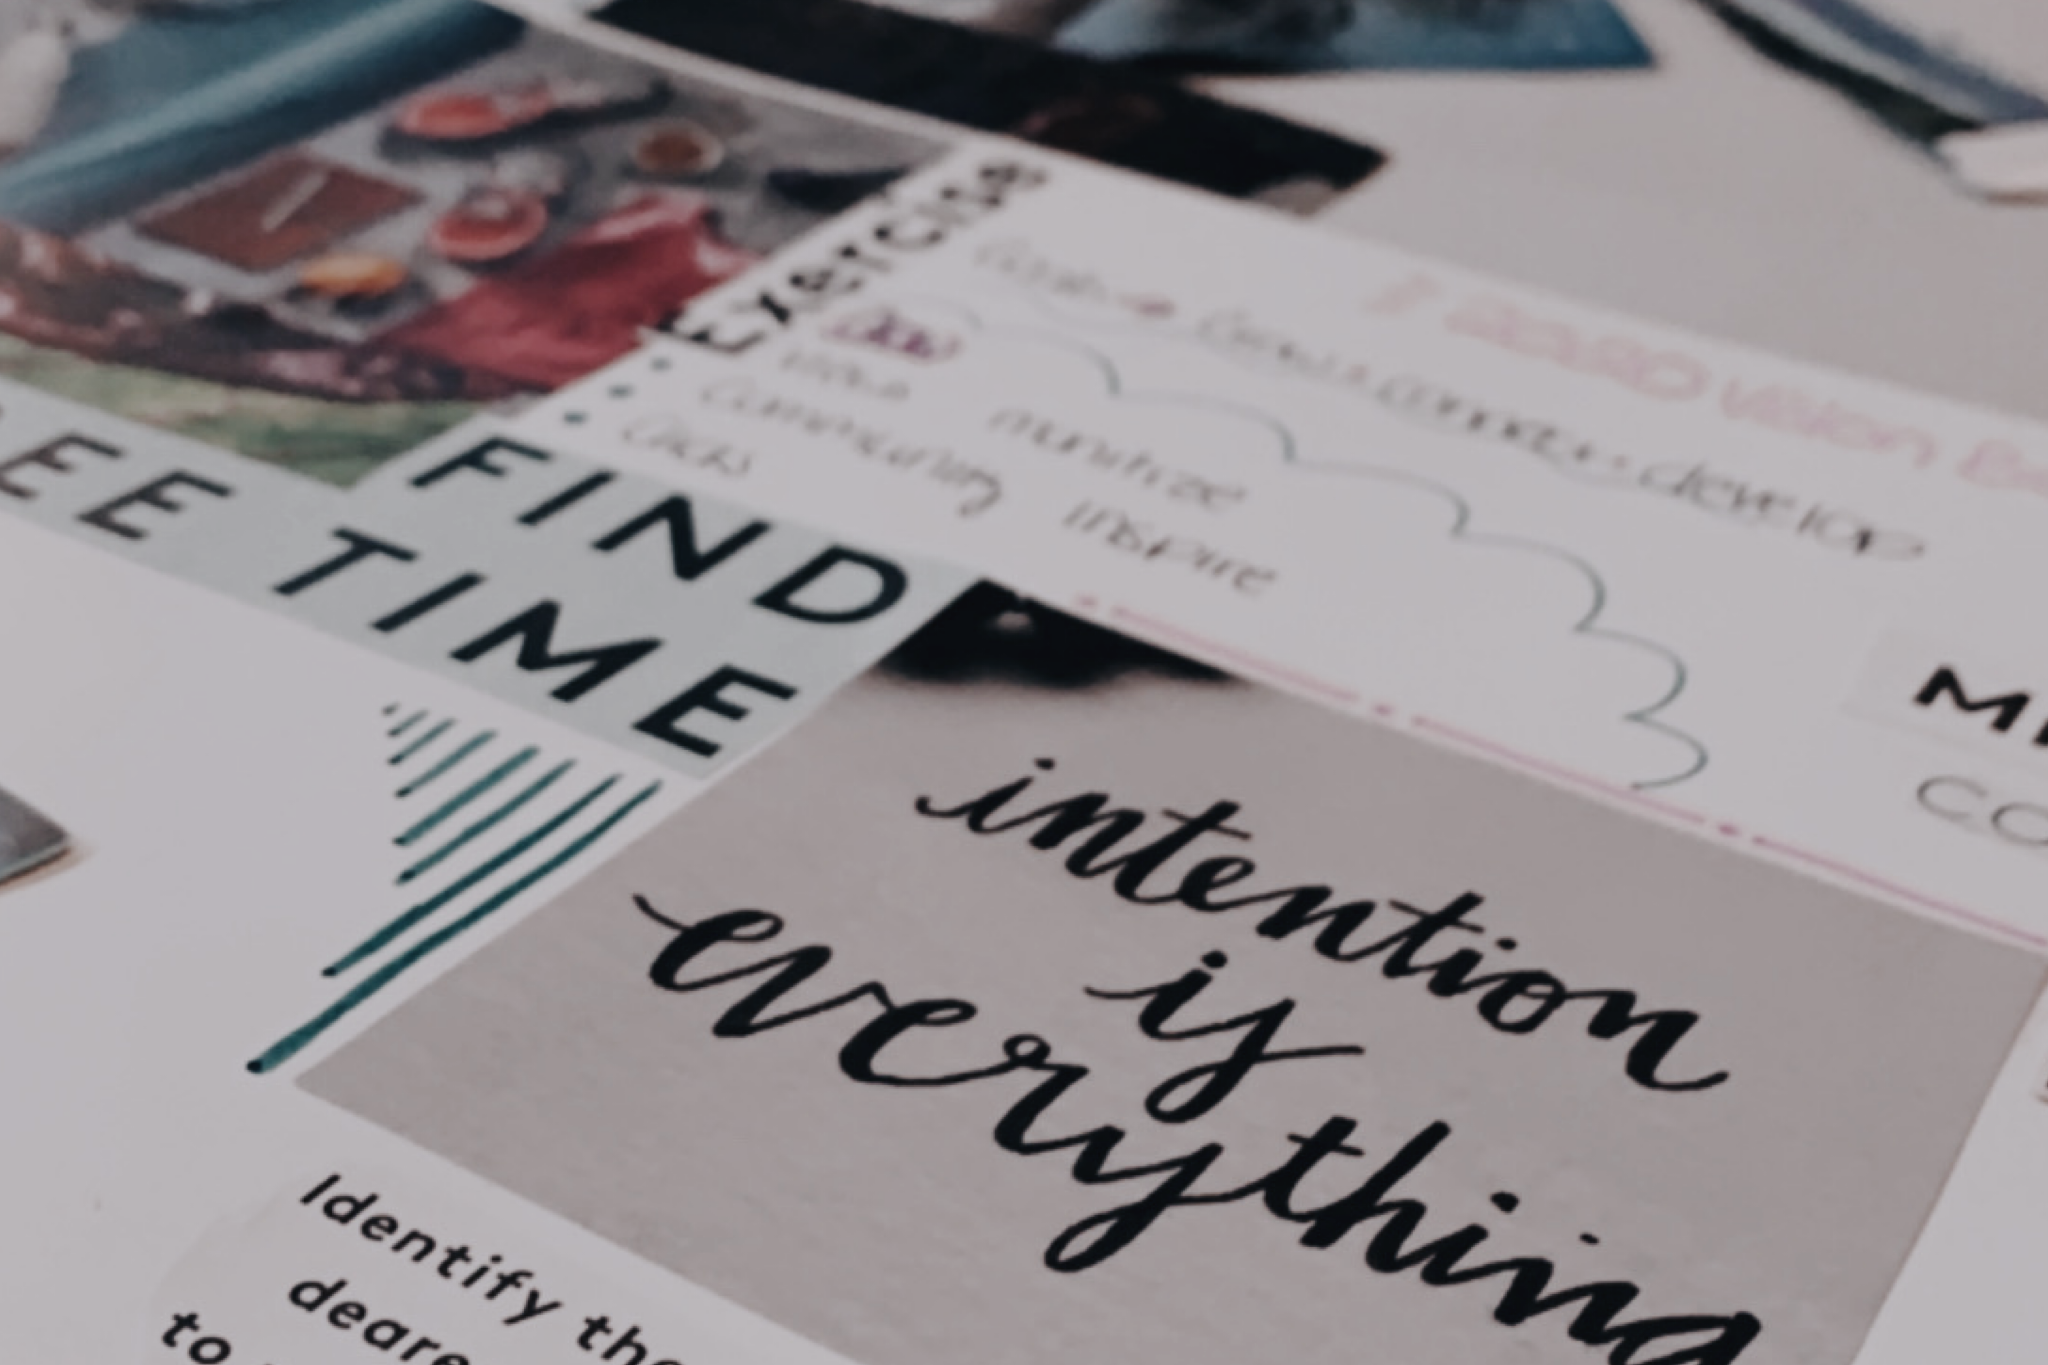 vision board collage design 2020 from the blog 5 habits for mental wellness